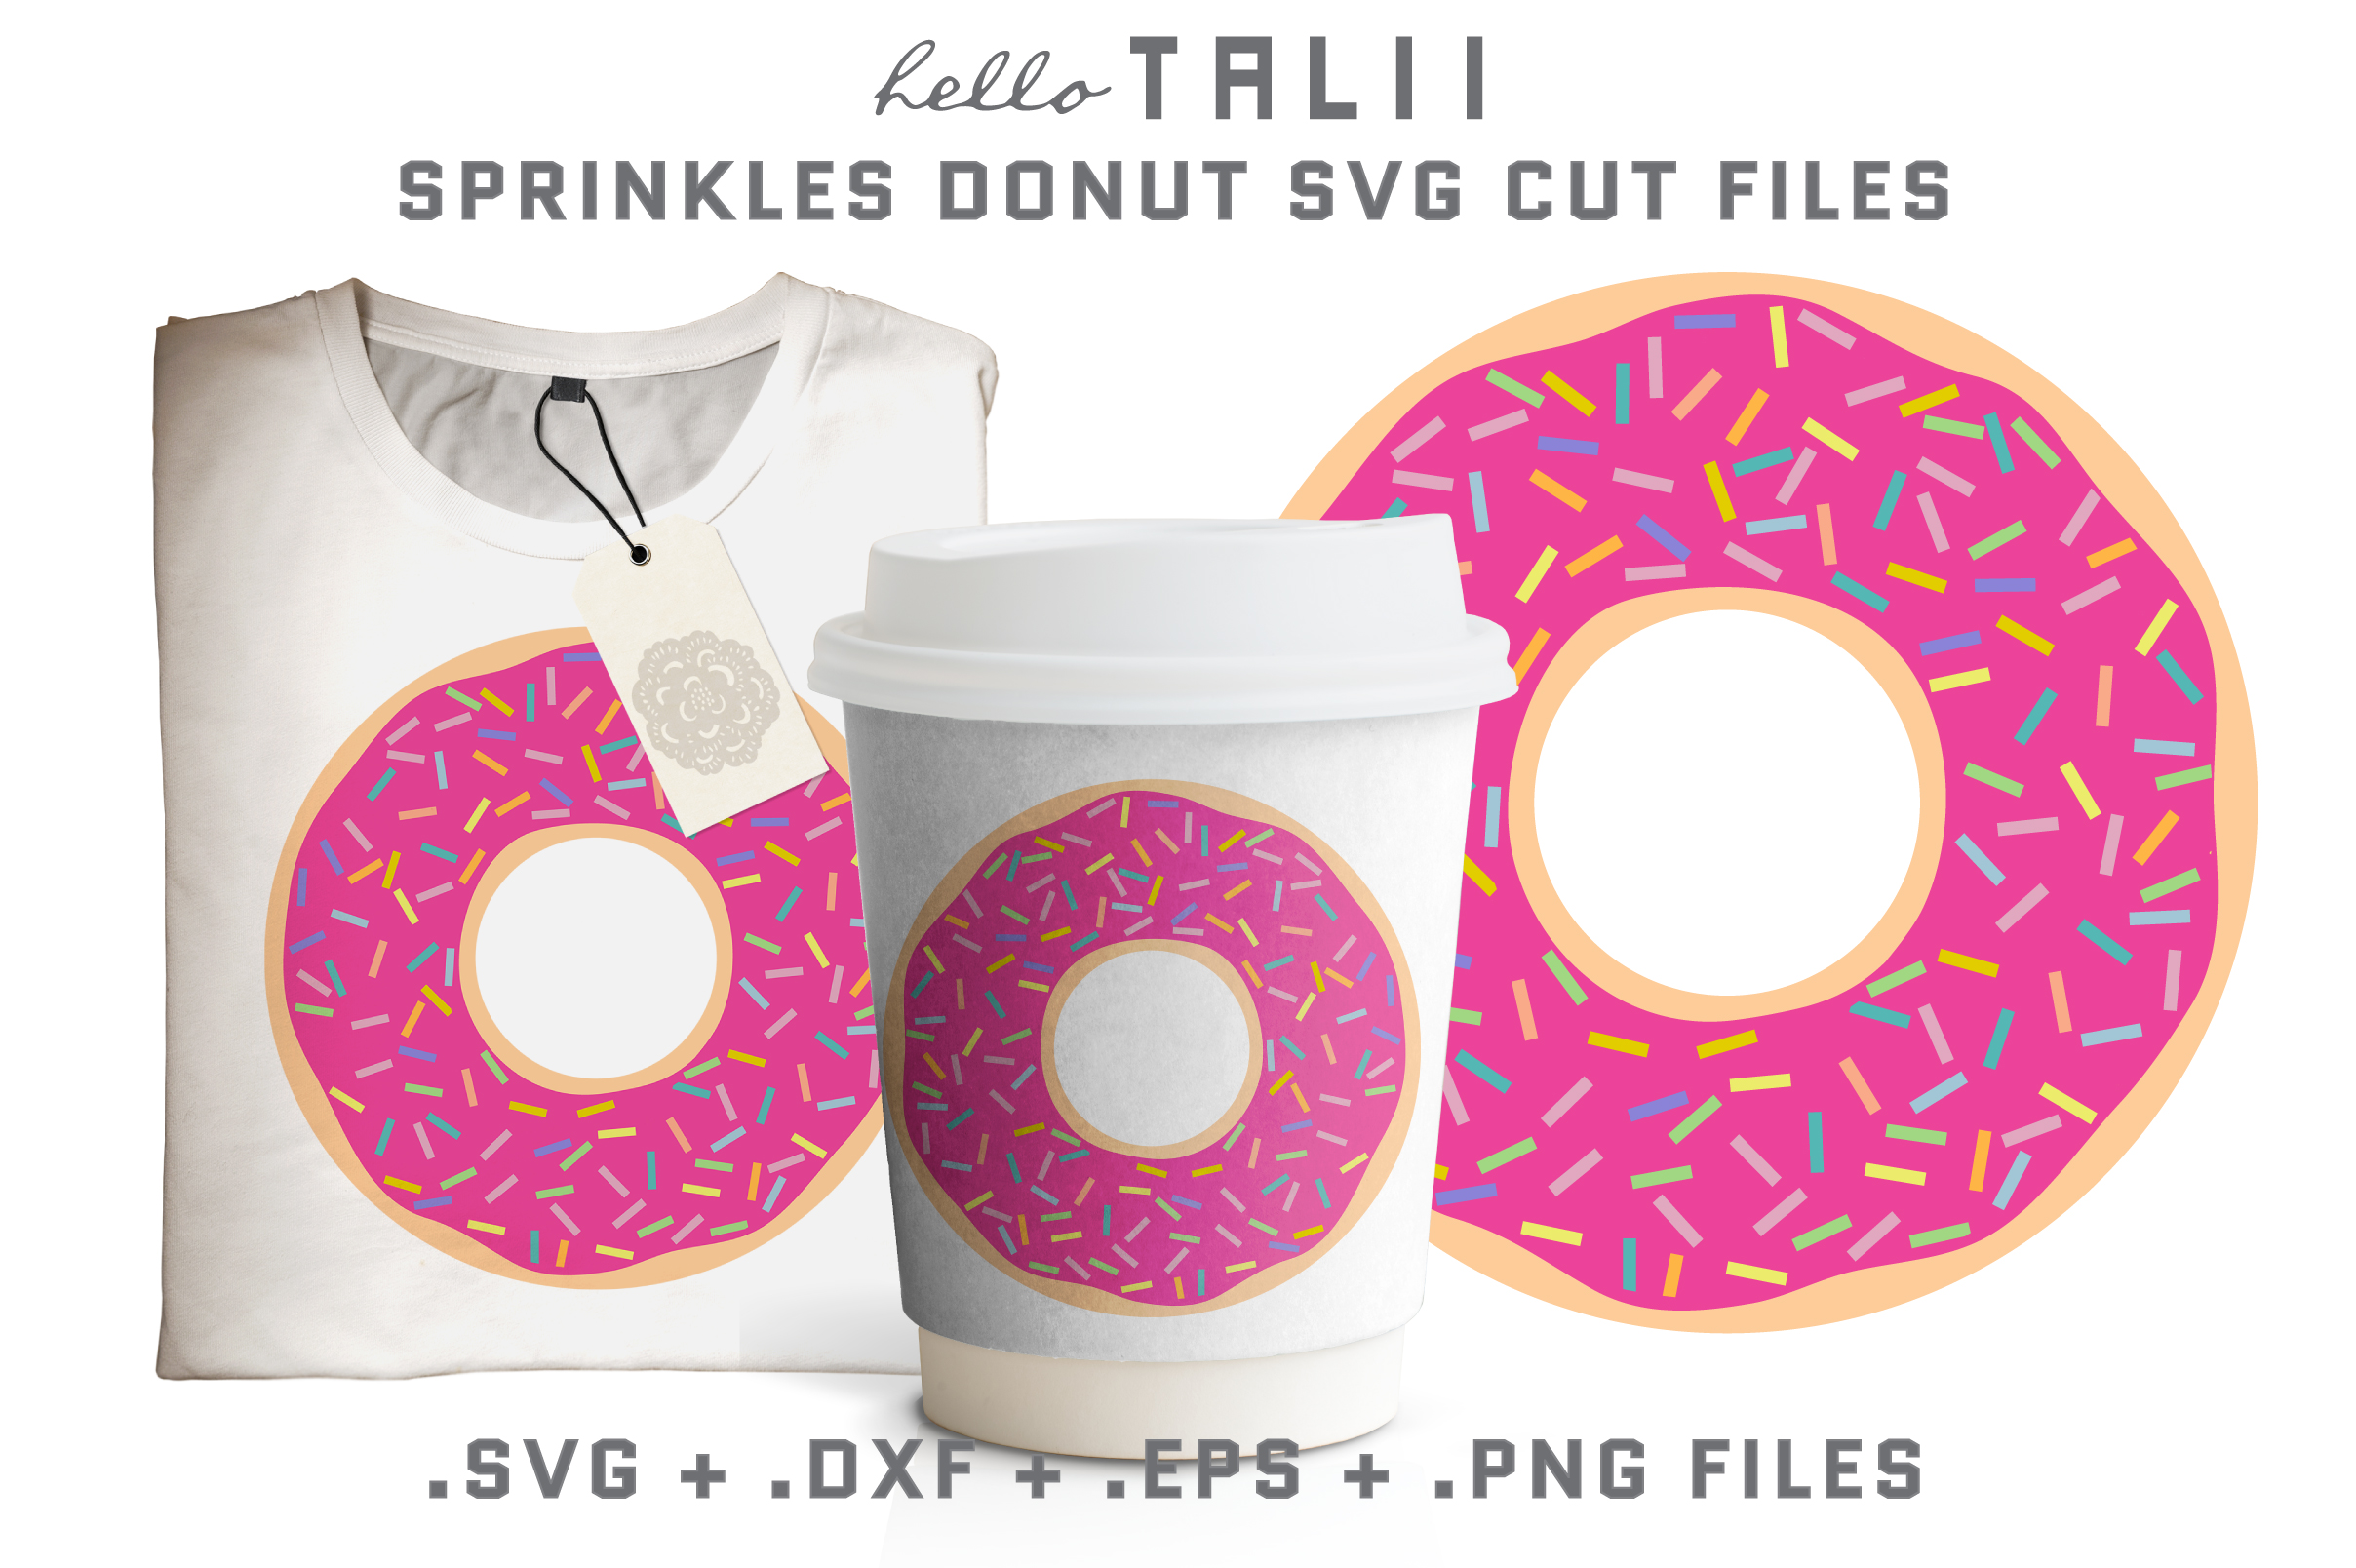 Sprinkles Donut SVG Cut files example image 1